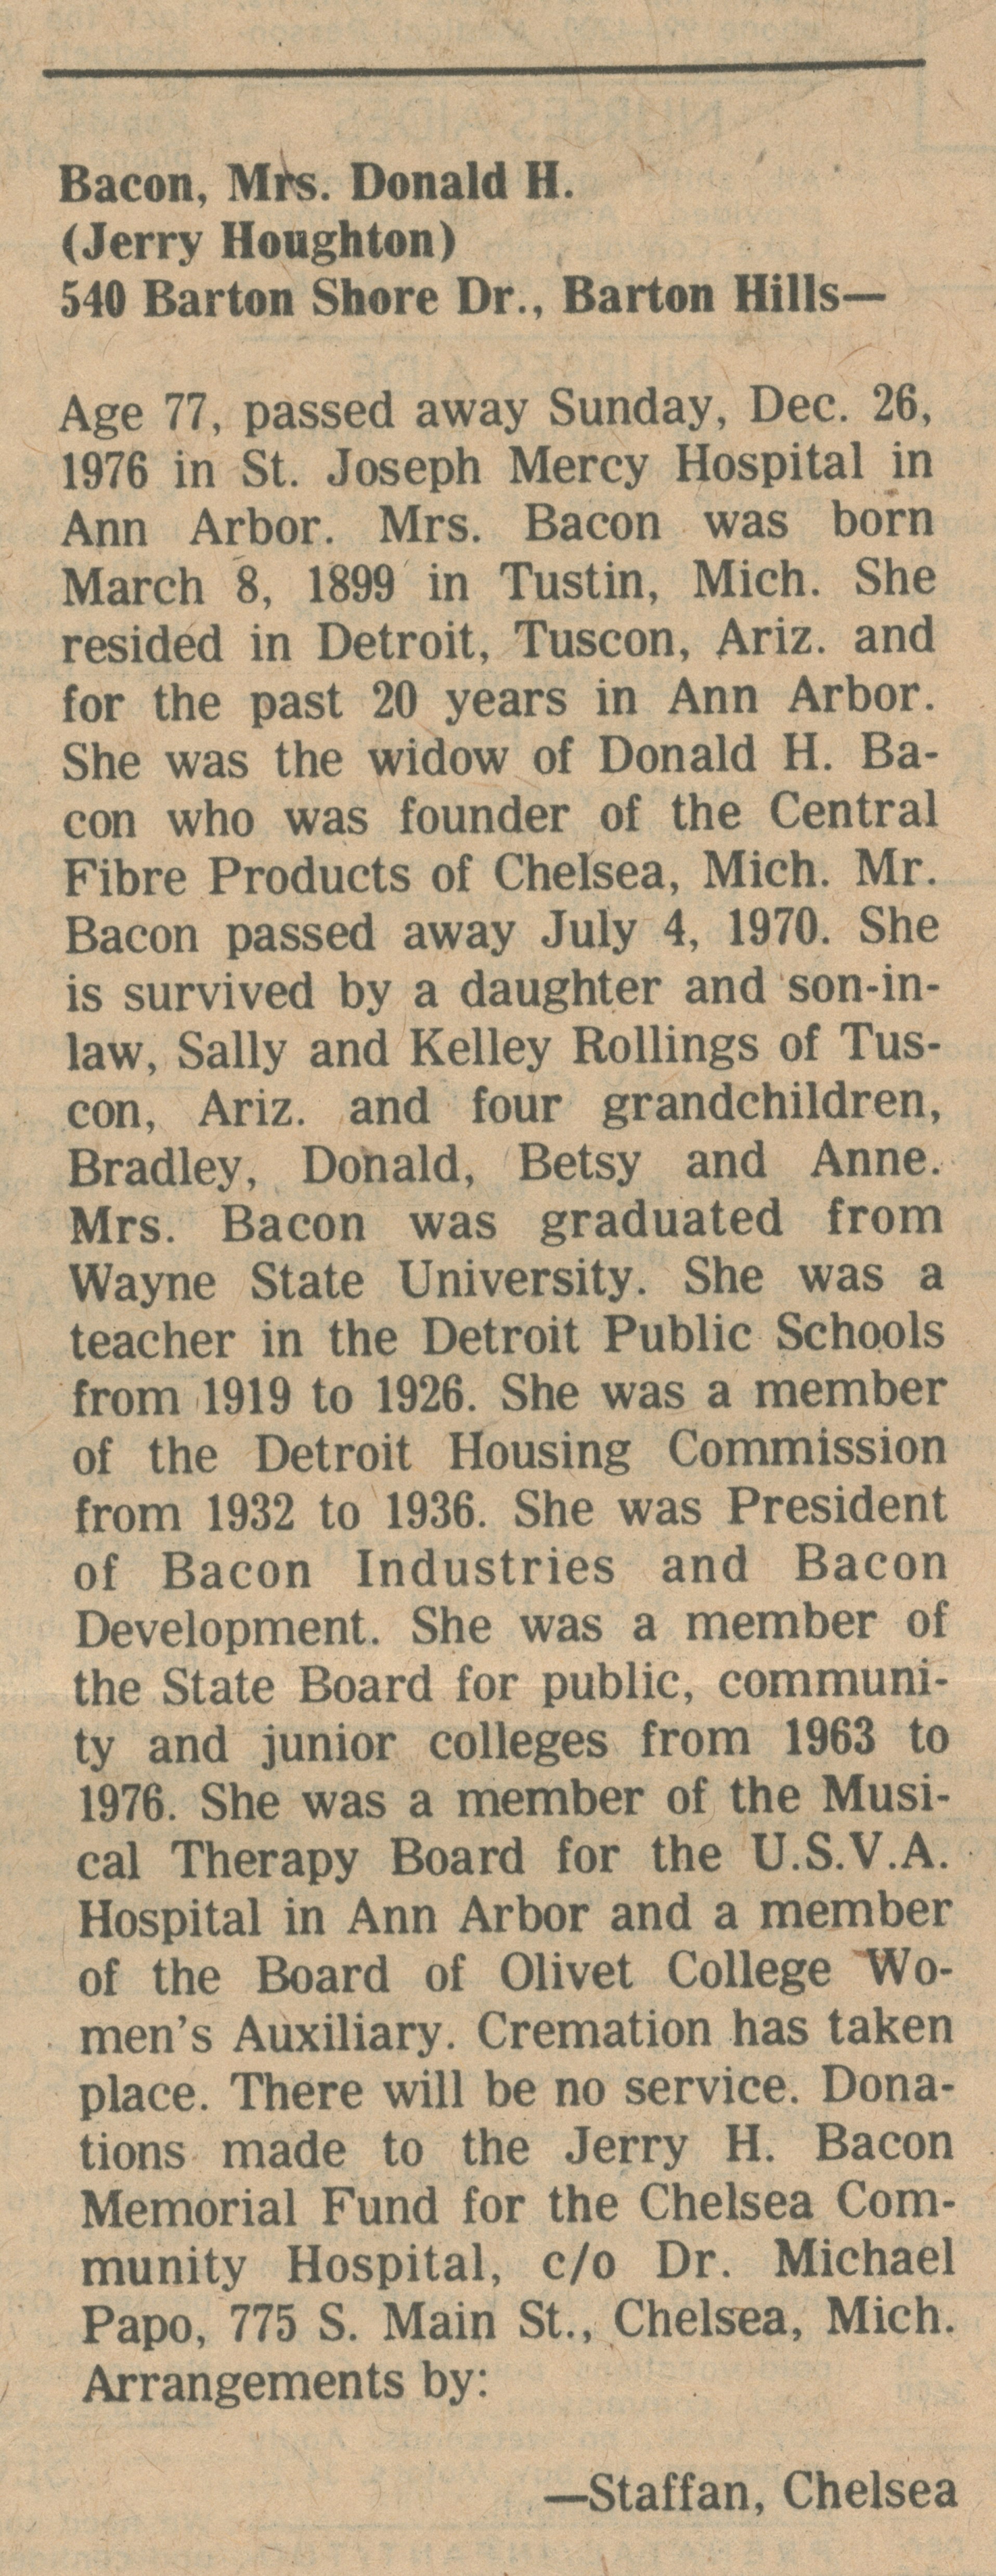 Bacon, Mrs. Donald. H. (Jerry Houghton) image